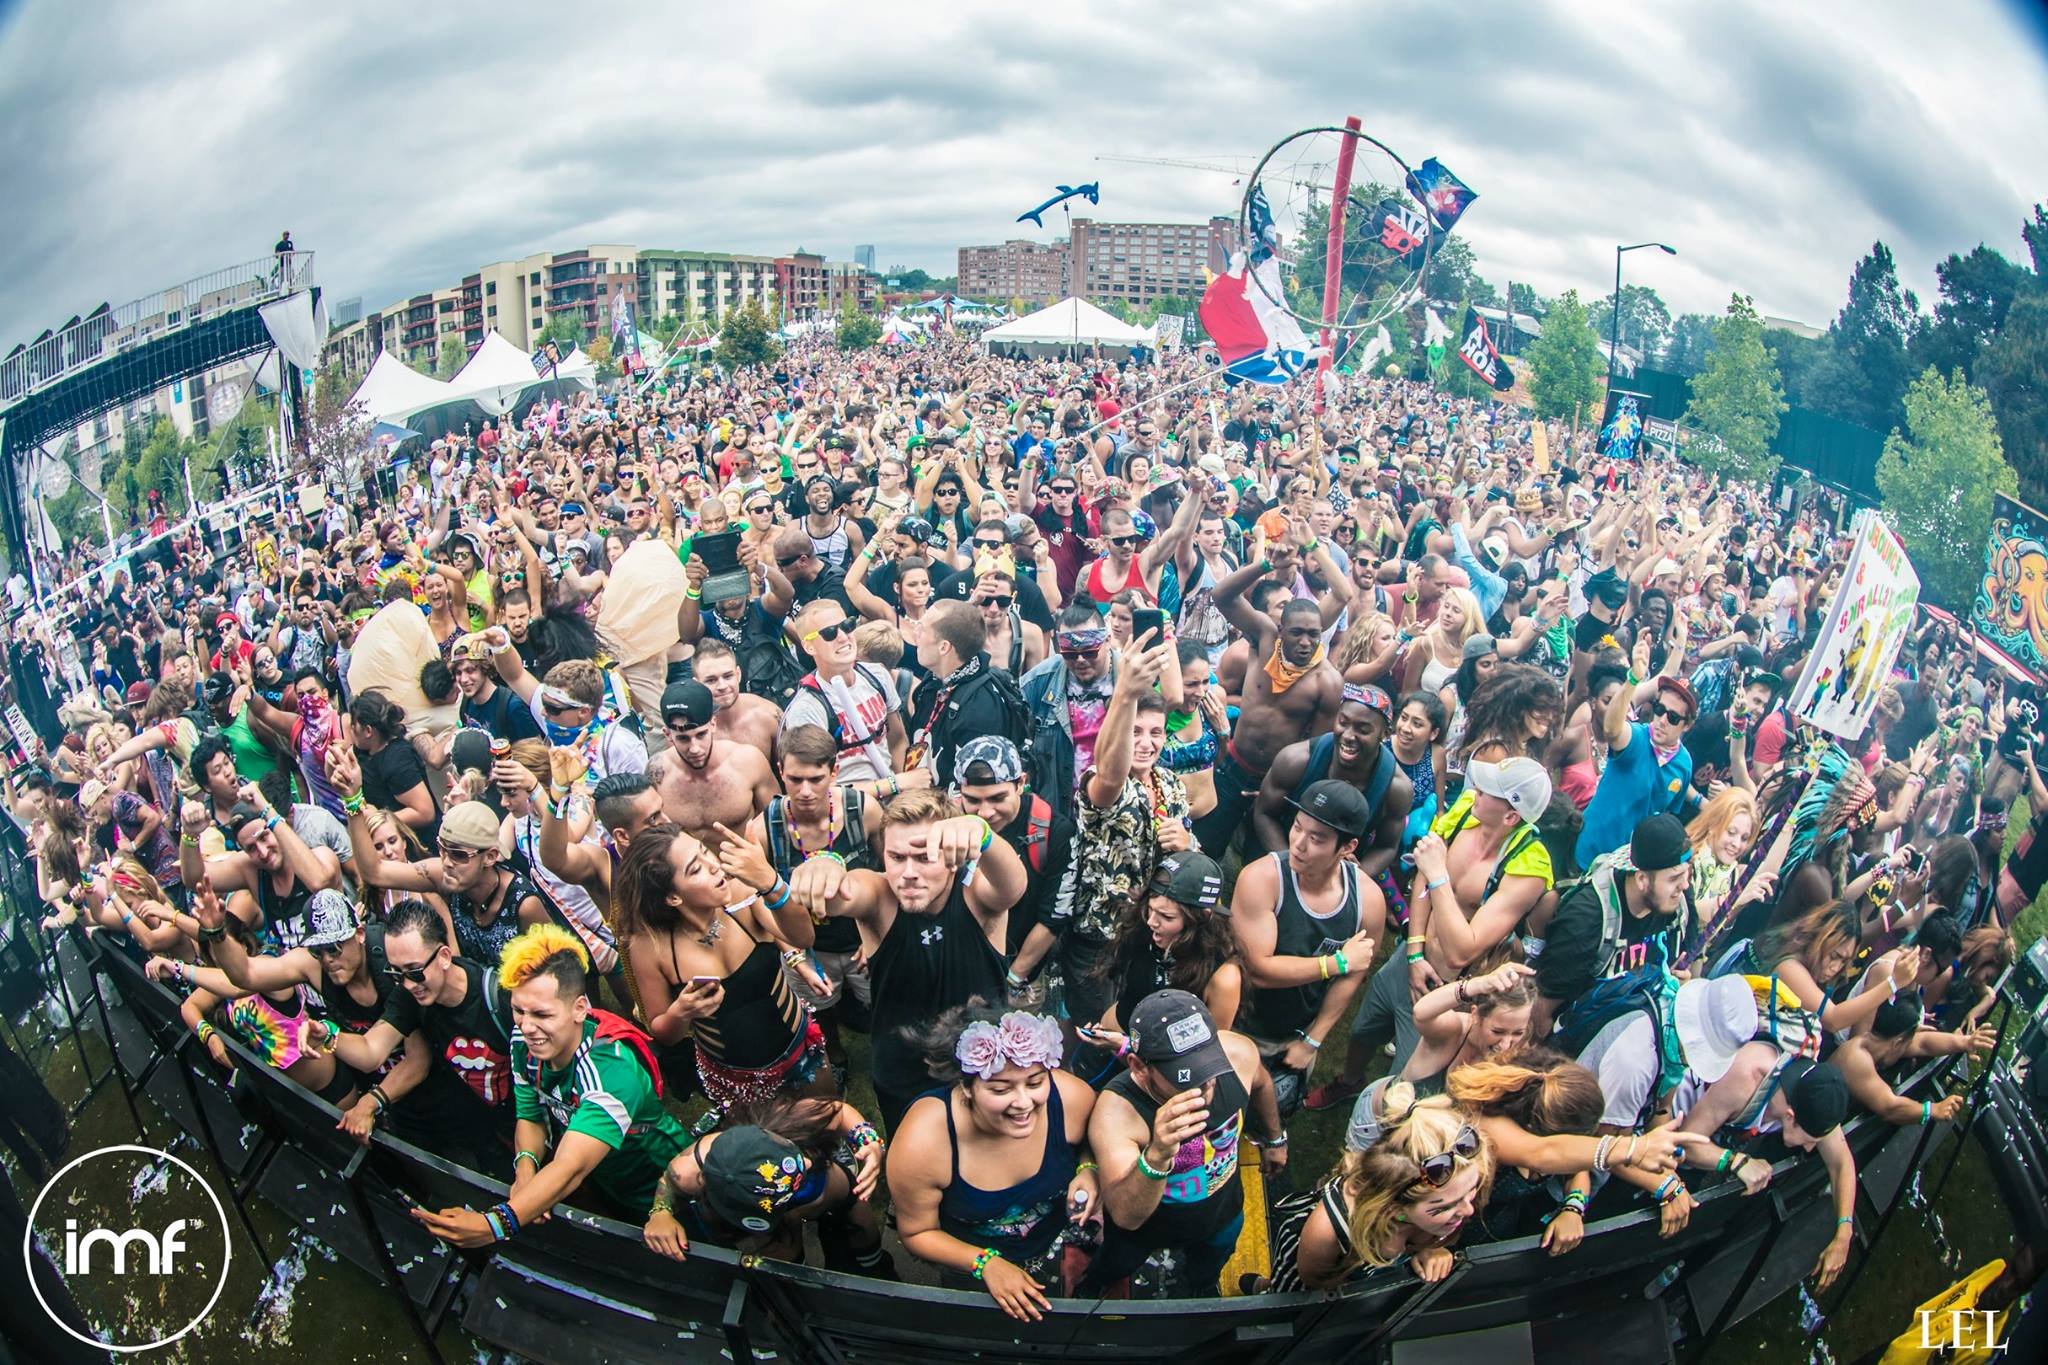 186a84d3b Imagine Music Festival Drops Incredible Phase 1 Lineup For Fourth ...